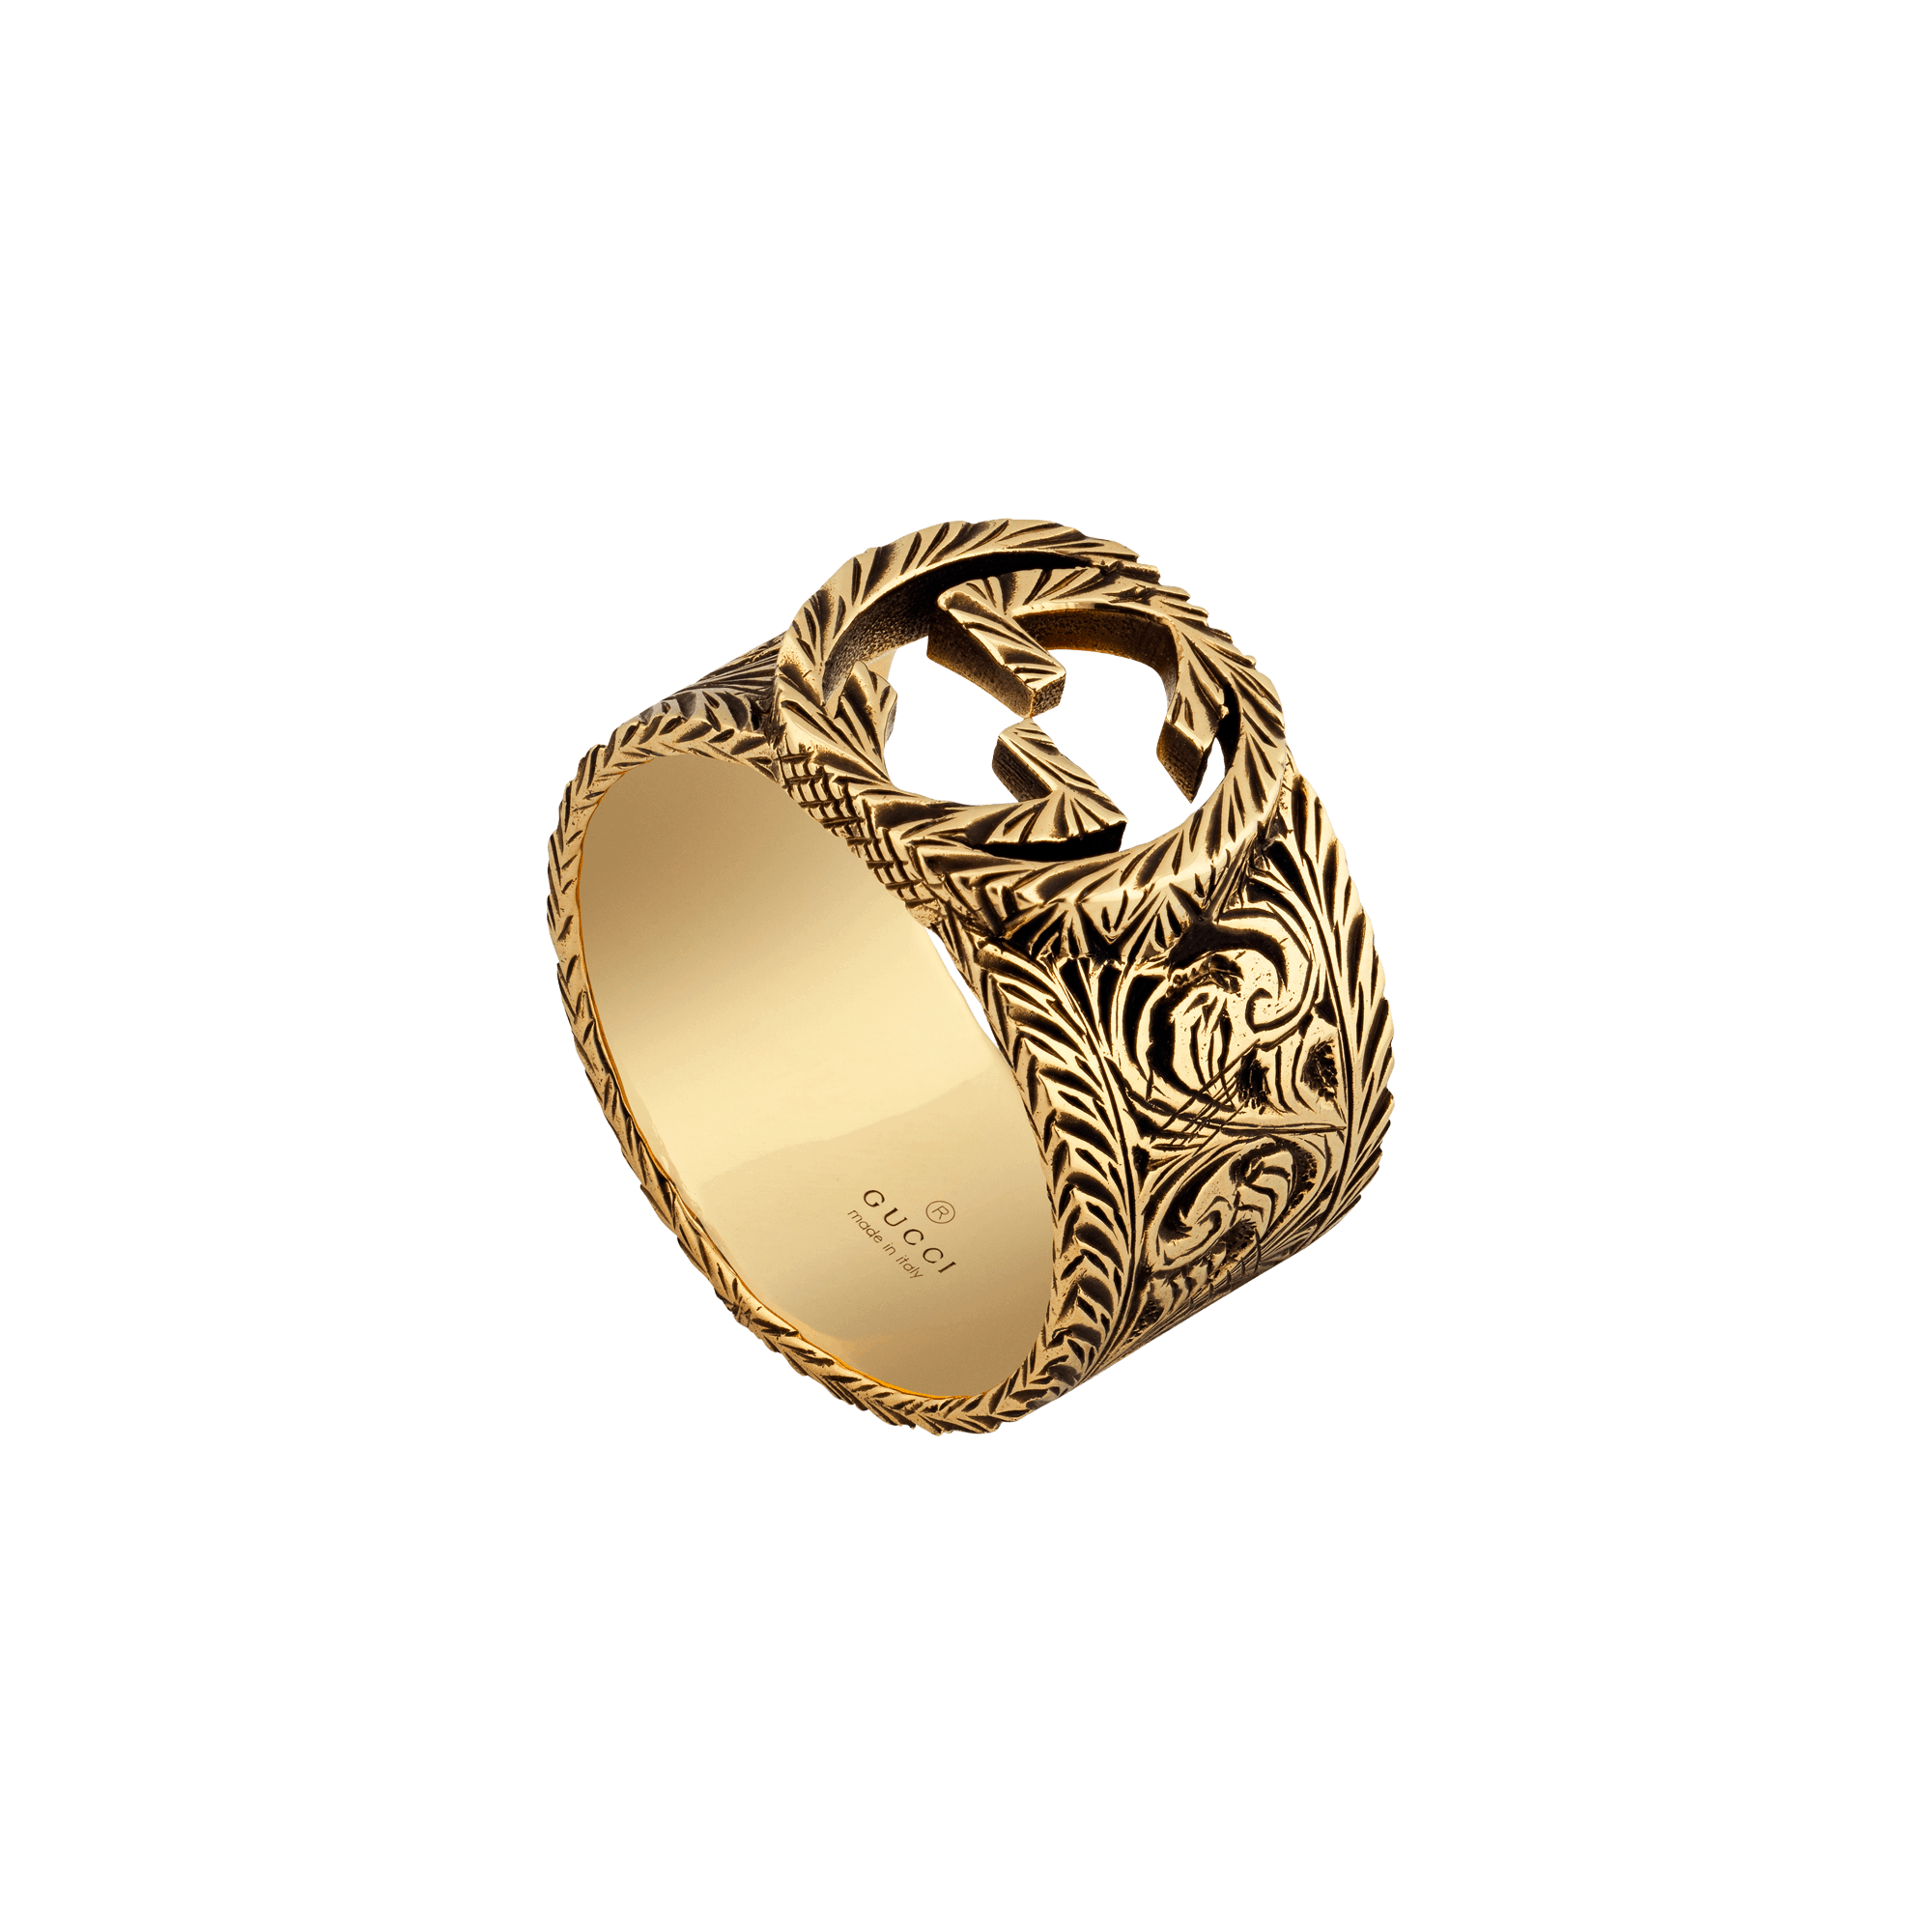 GUCCI Yellow gold ring with Interlocking G DISCOUNT SCONTO ANELLO